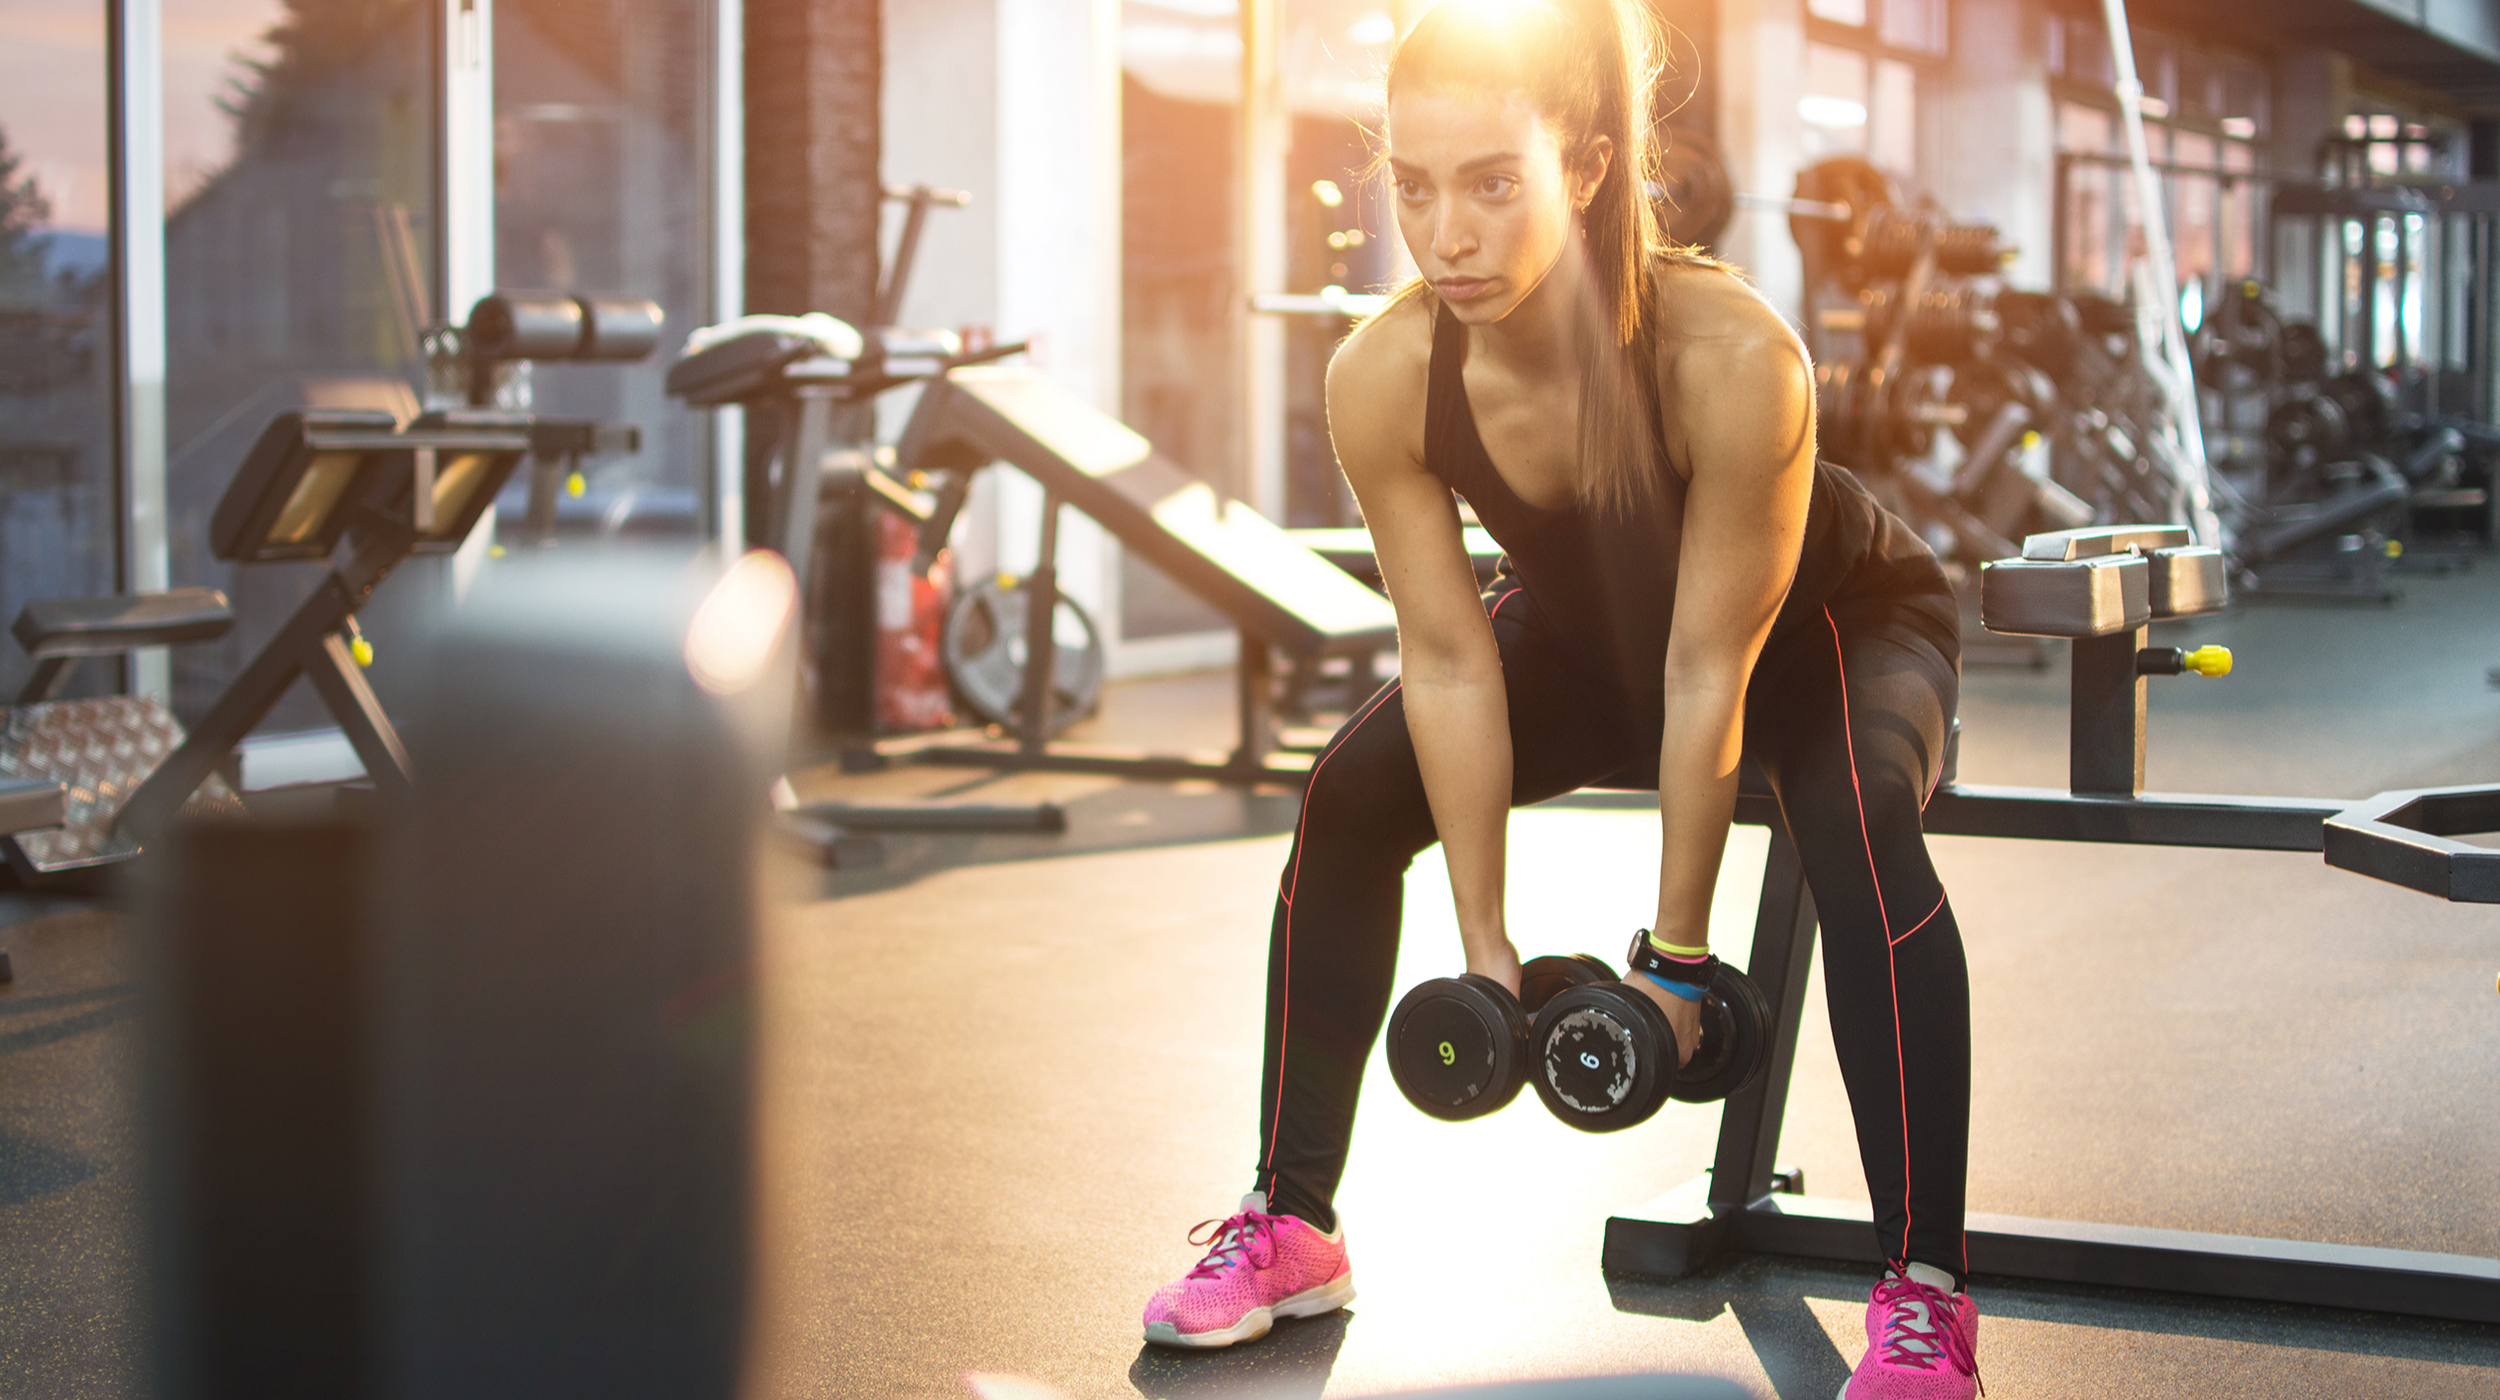 Resistance Training – Why is it so Effective for Weight Loss?